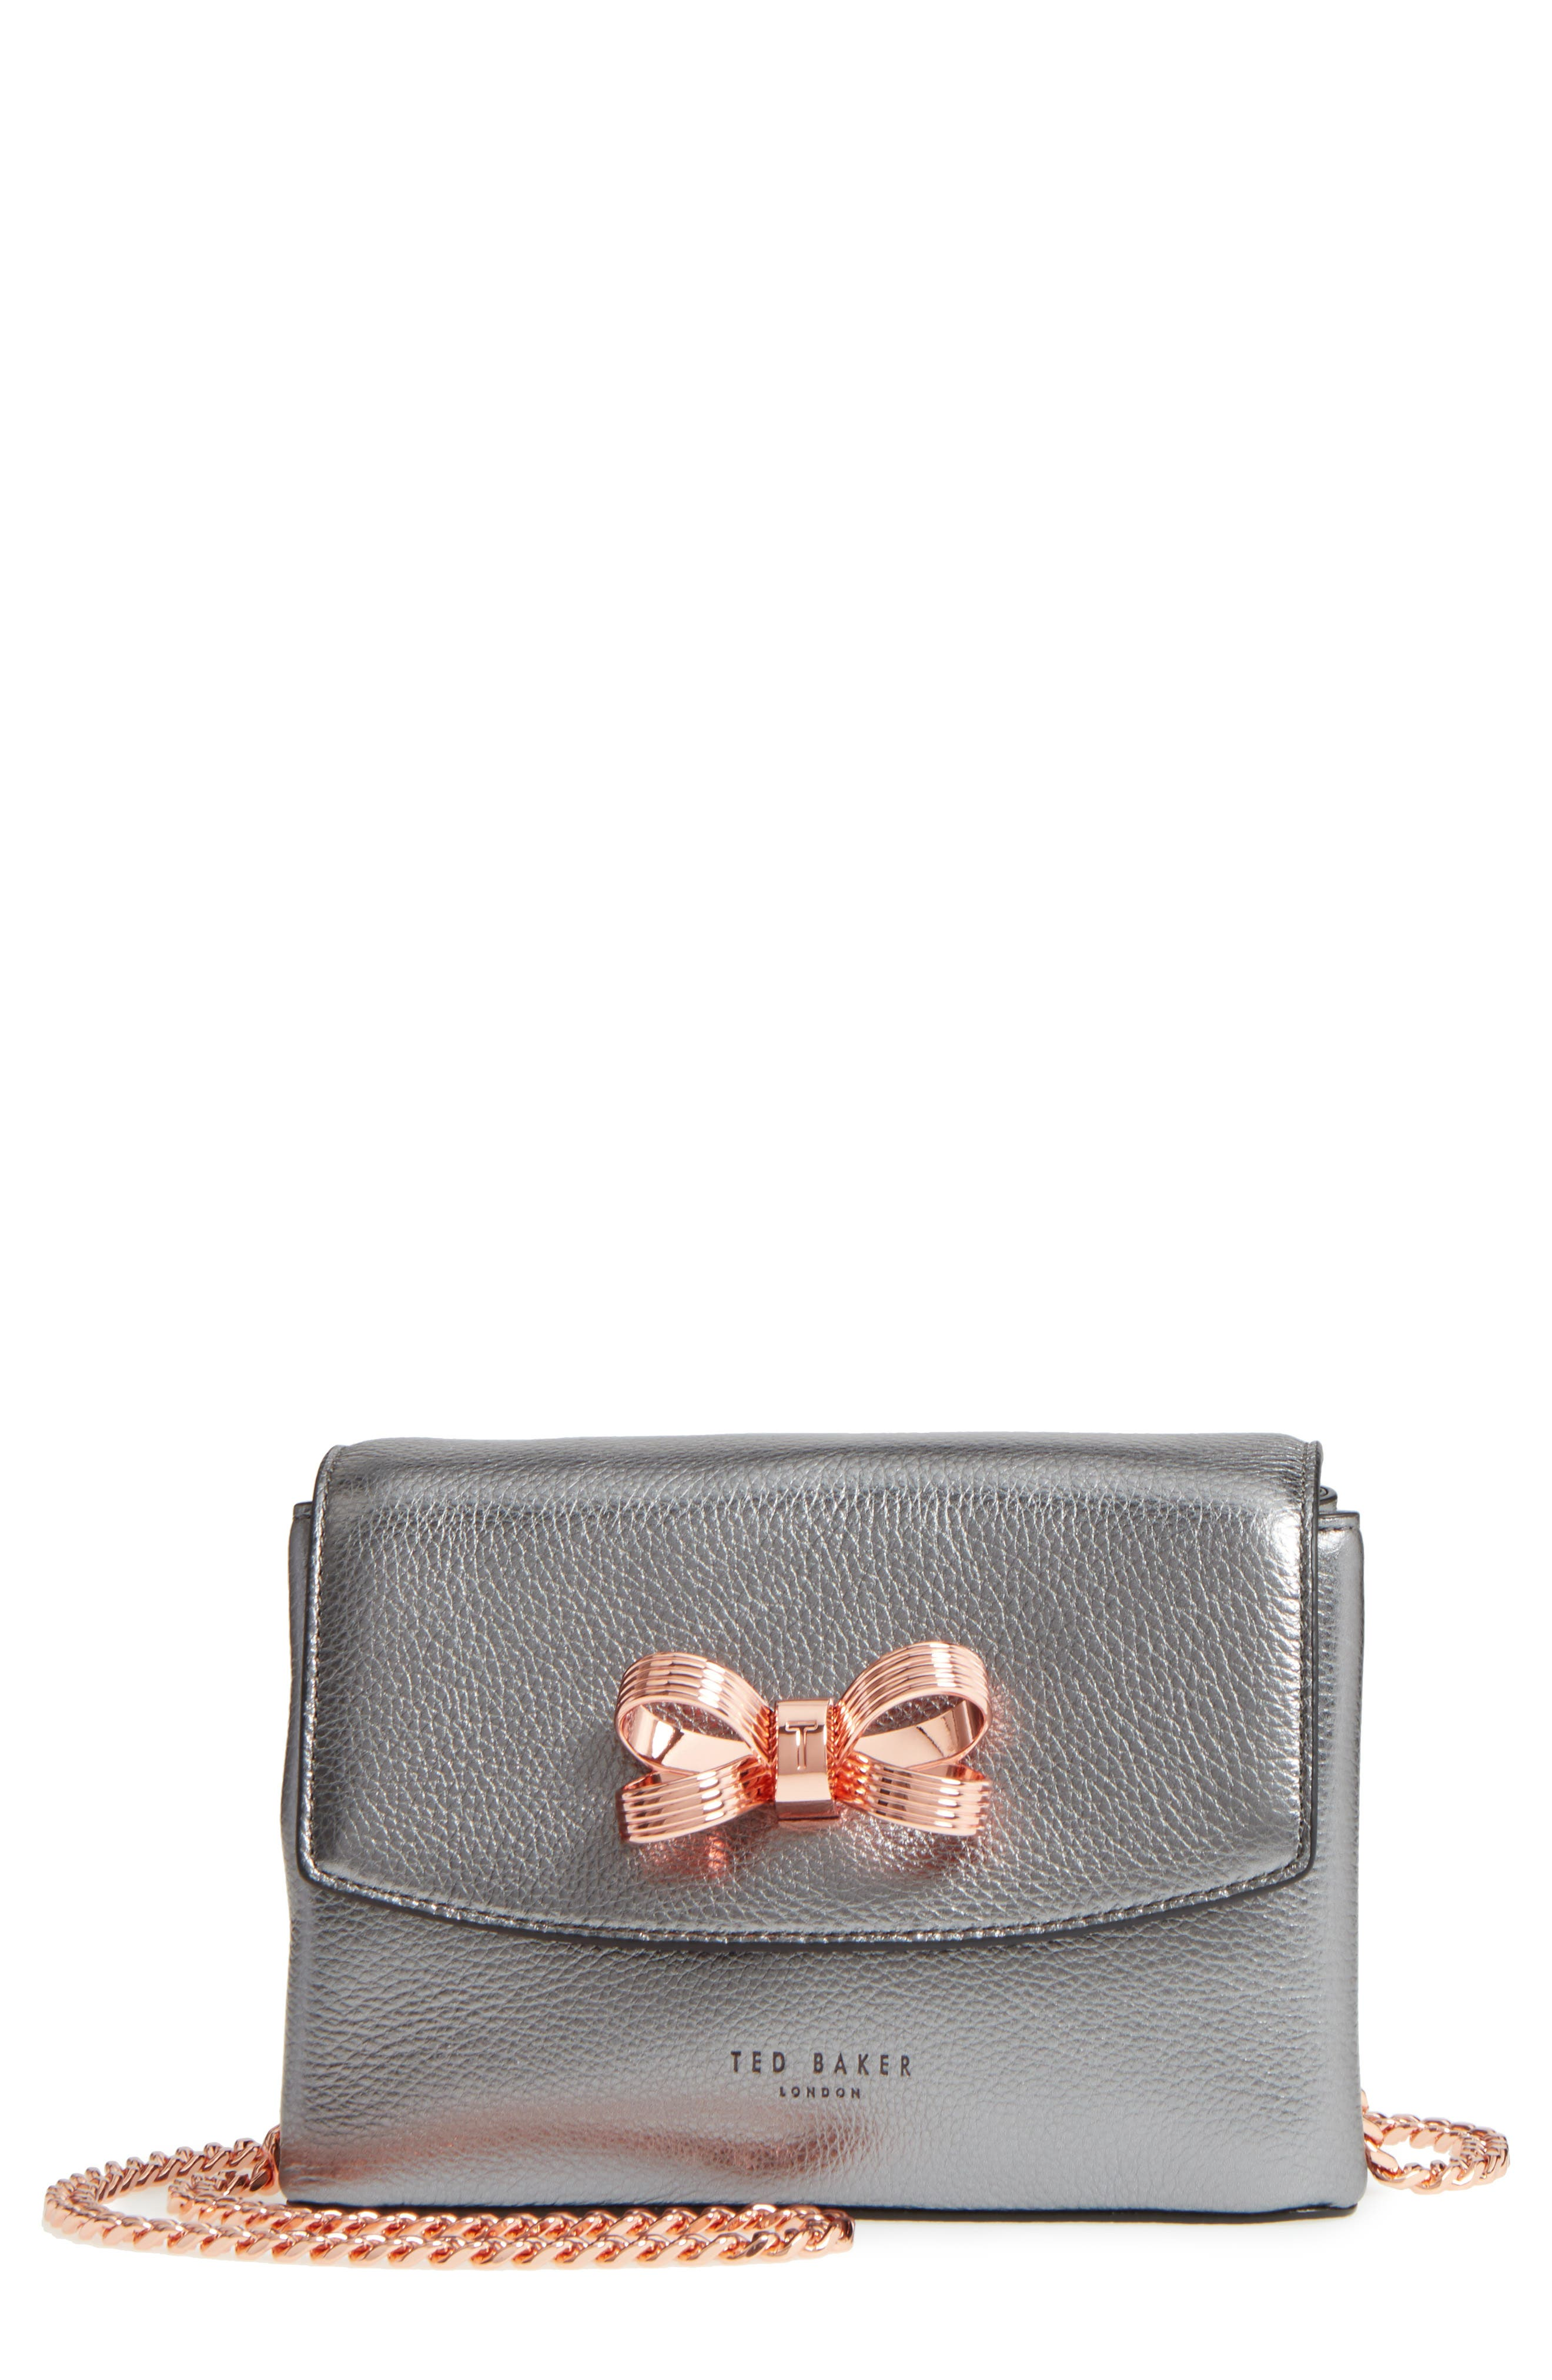 Lupiin Metallic Leather Crossbody Bag,                             Main thumbnail 1, color,                             022